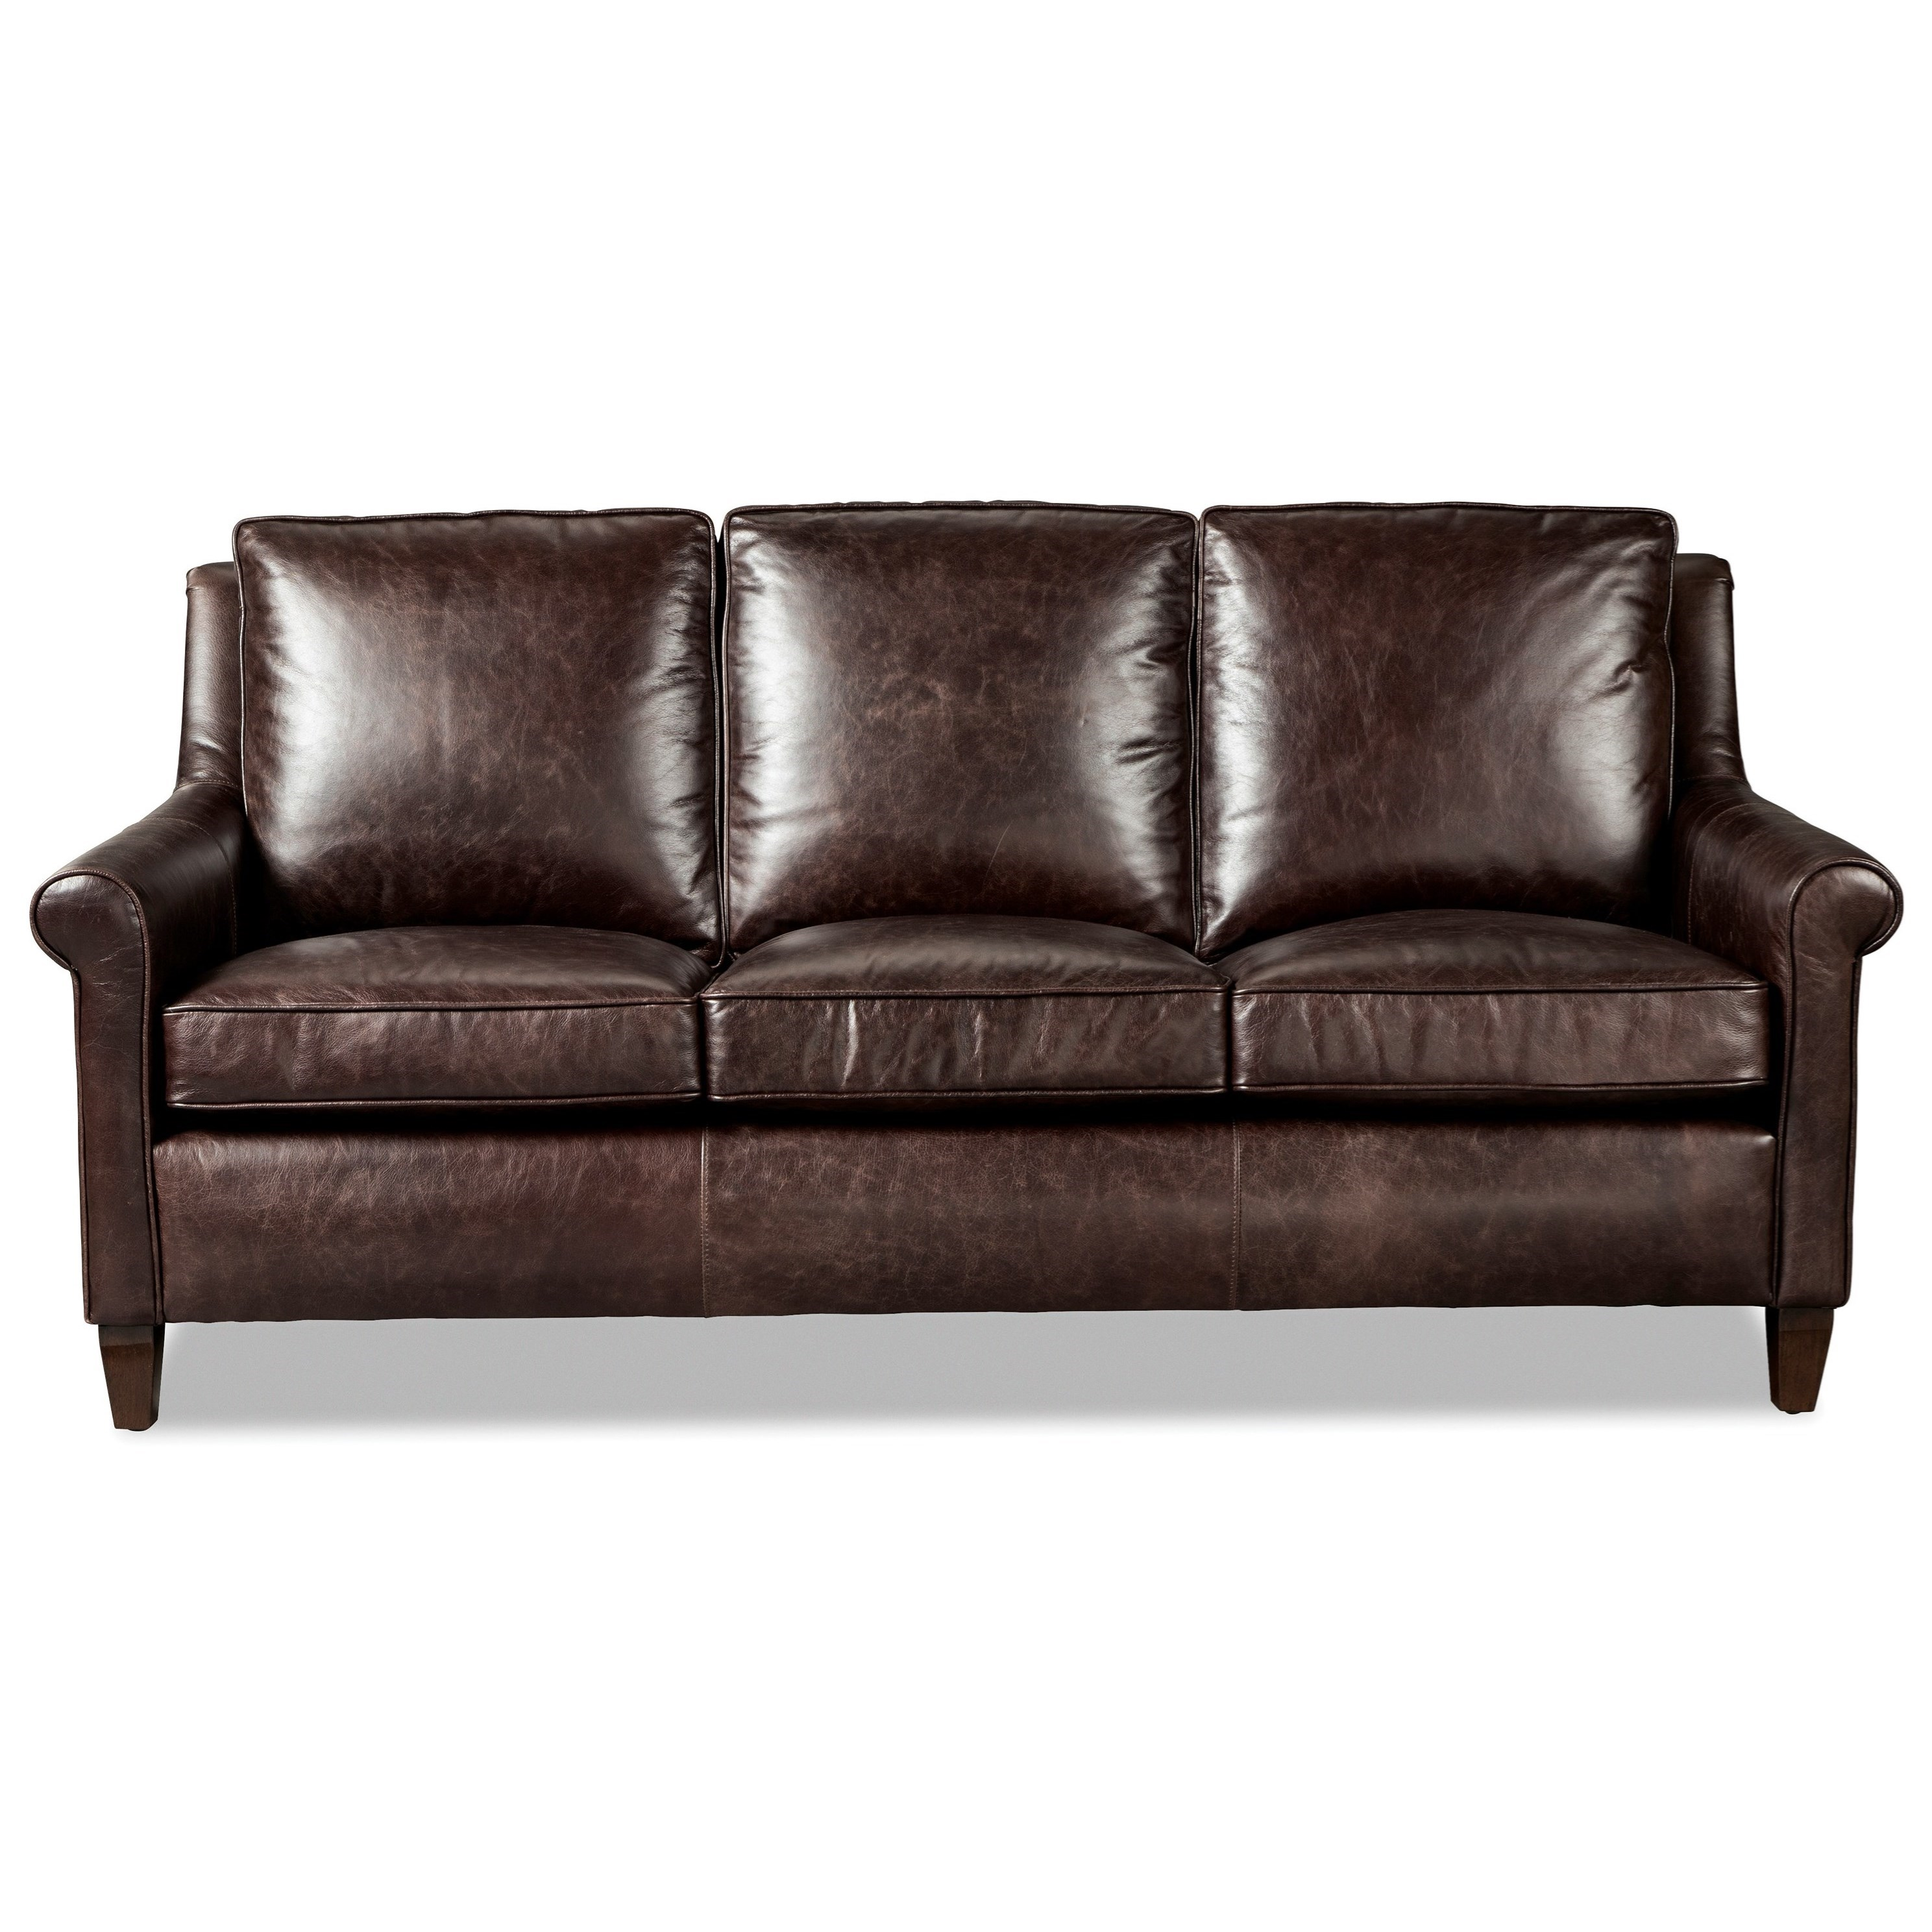 Hickorycraft L174850 Transitional Sofa